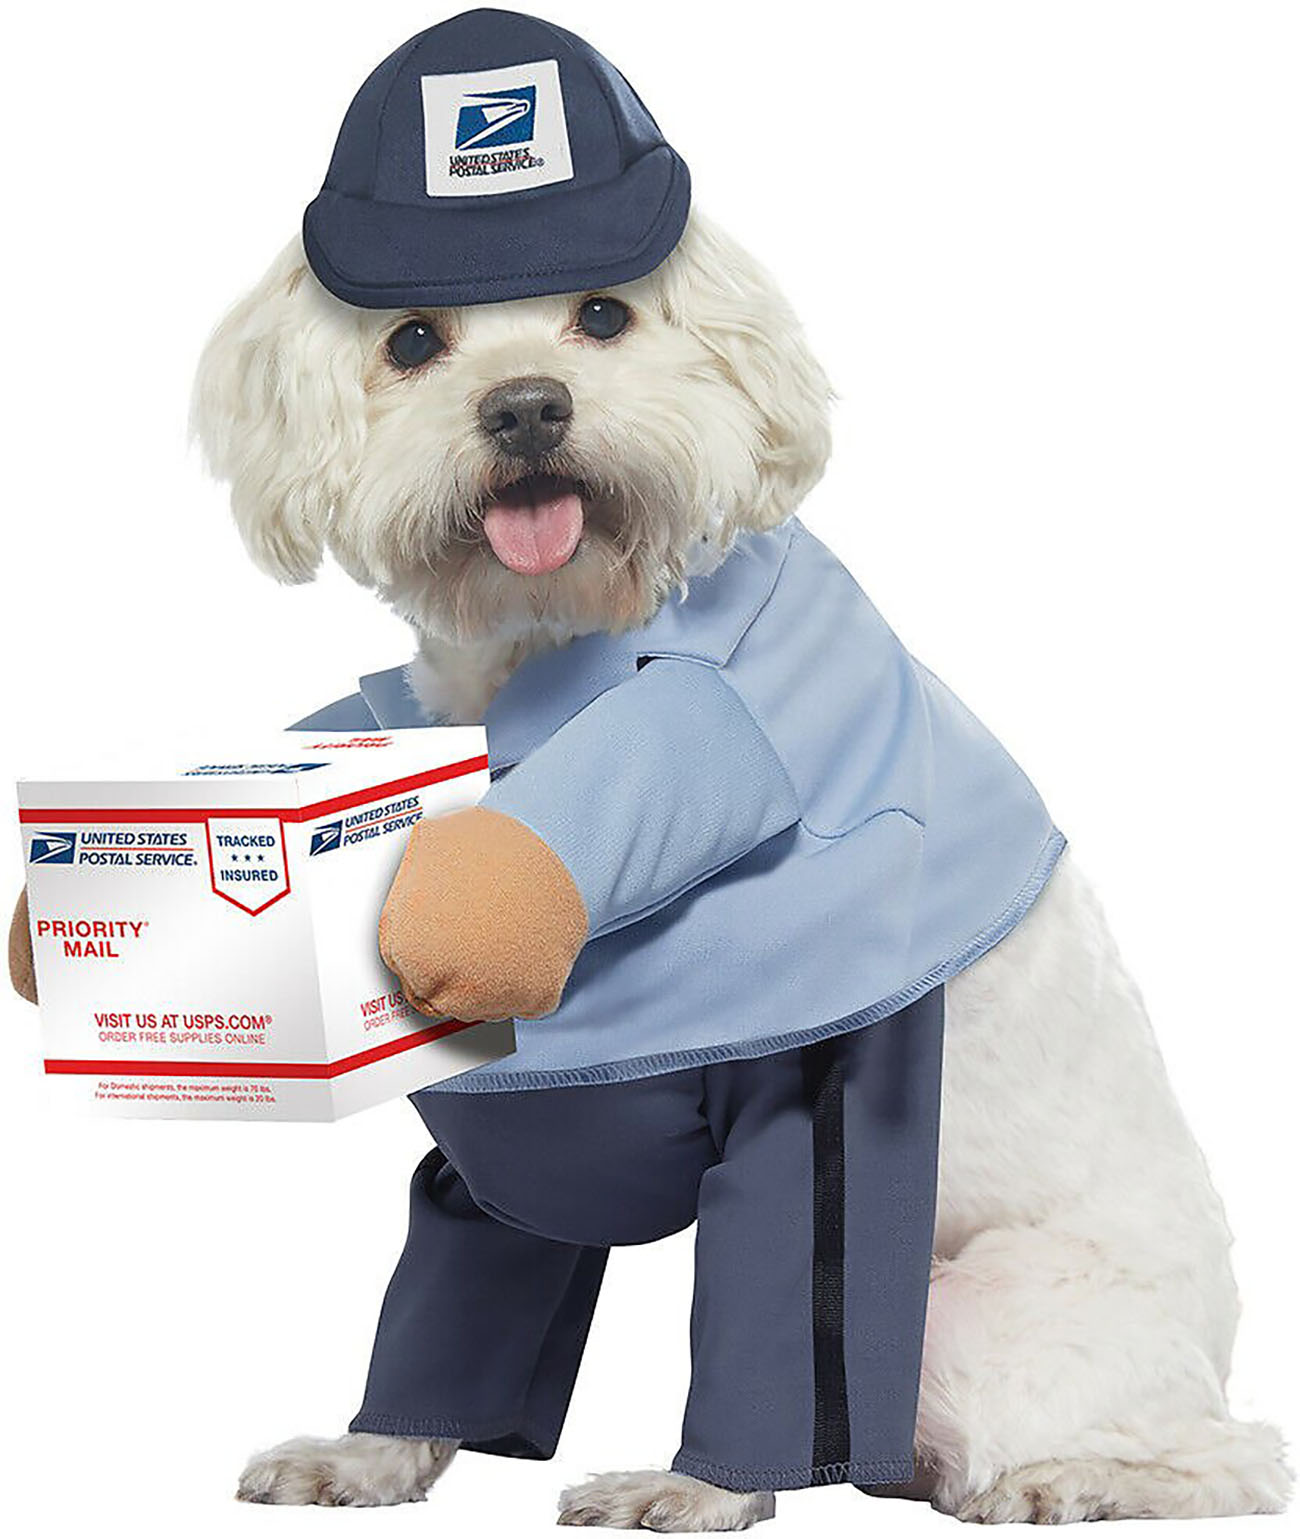 mailman dog costume